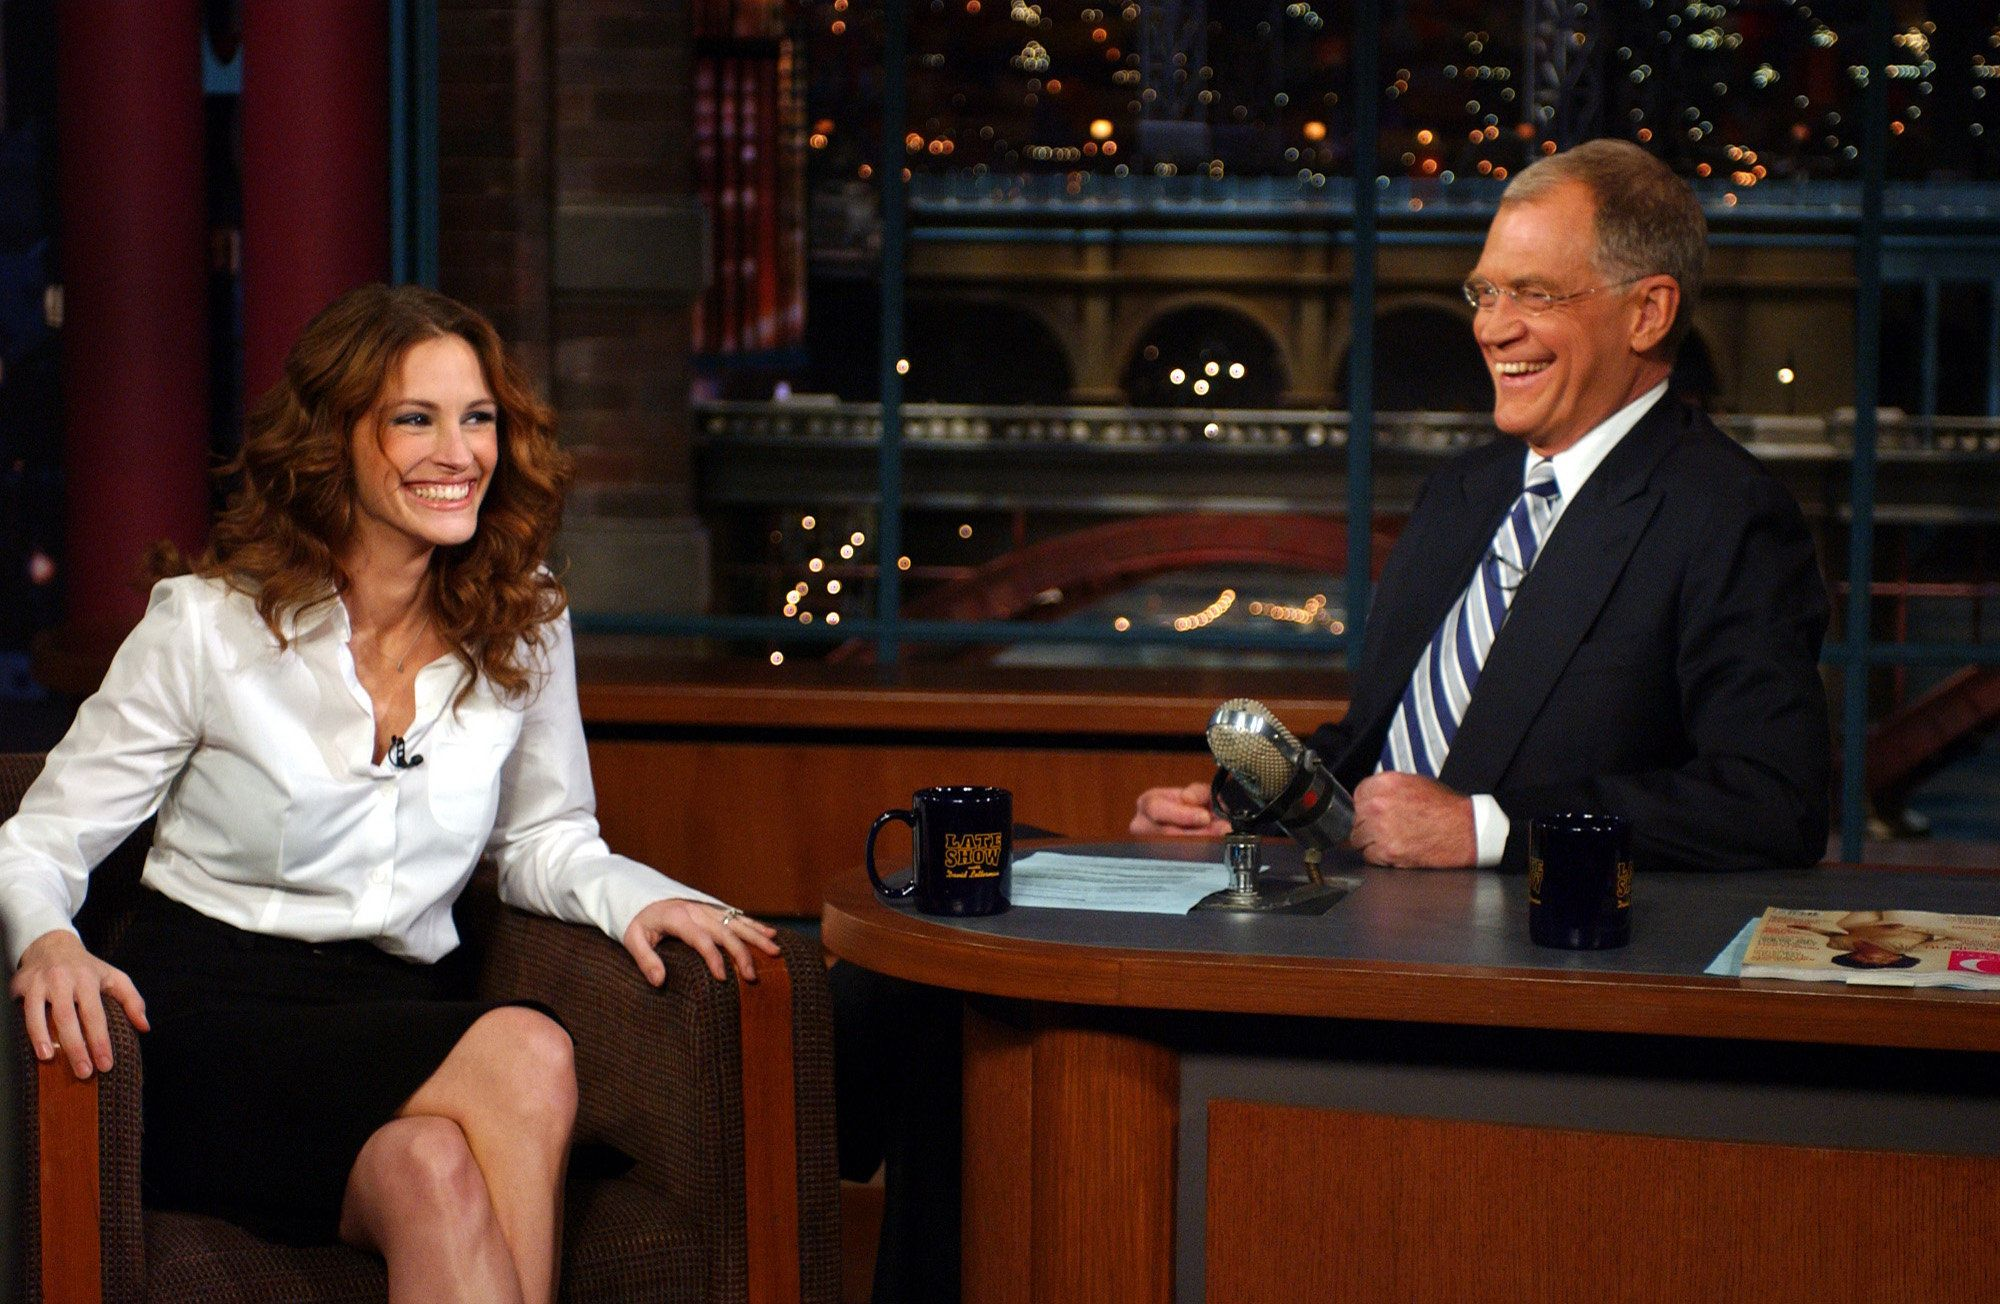 NEW YORK - DECEMBER 12: Julia Roberts talks with Dave when she visits the LATE Show with DAVID LETTERMAN, to be broadcast Friday, Dec. 12, 2003 on the CBS Television Network. This photo is provided by CBS from the Late Show with David Letterman photo archive. (Photo by Jeffrey R. Staab/CBS via Getty Images)